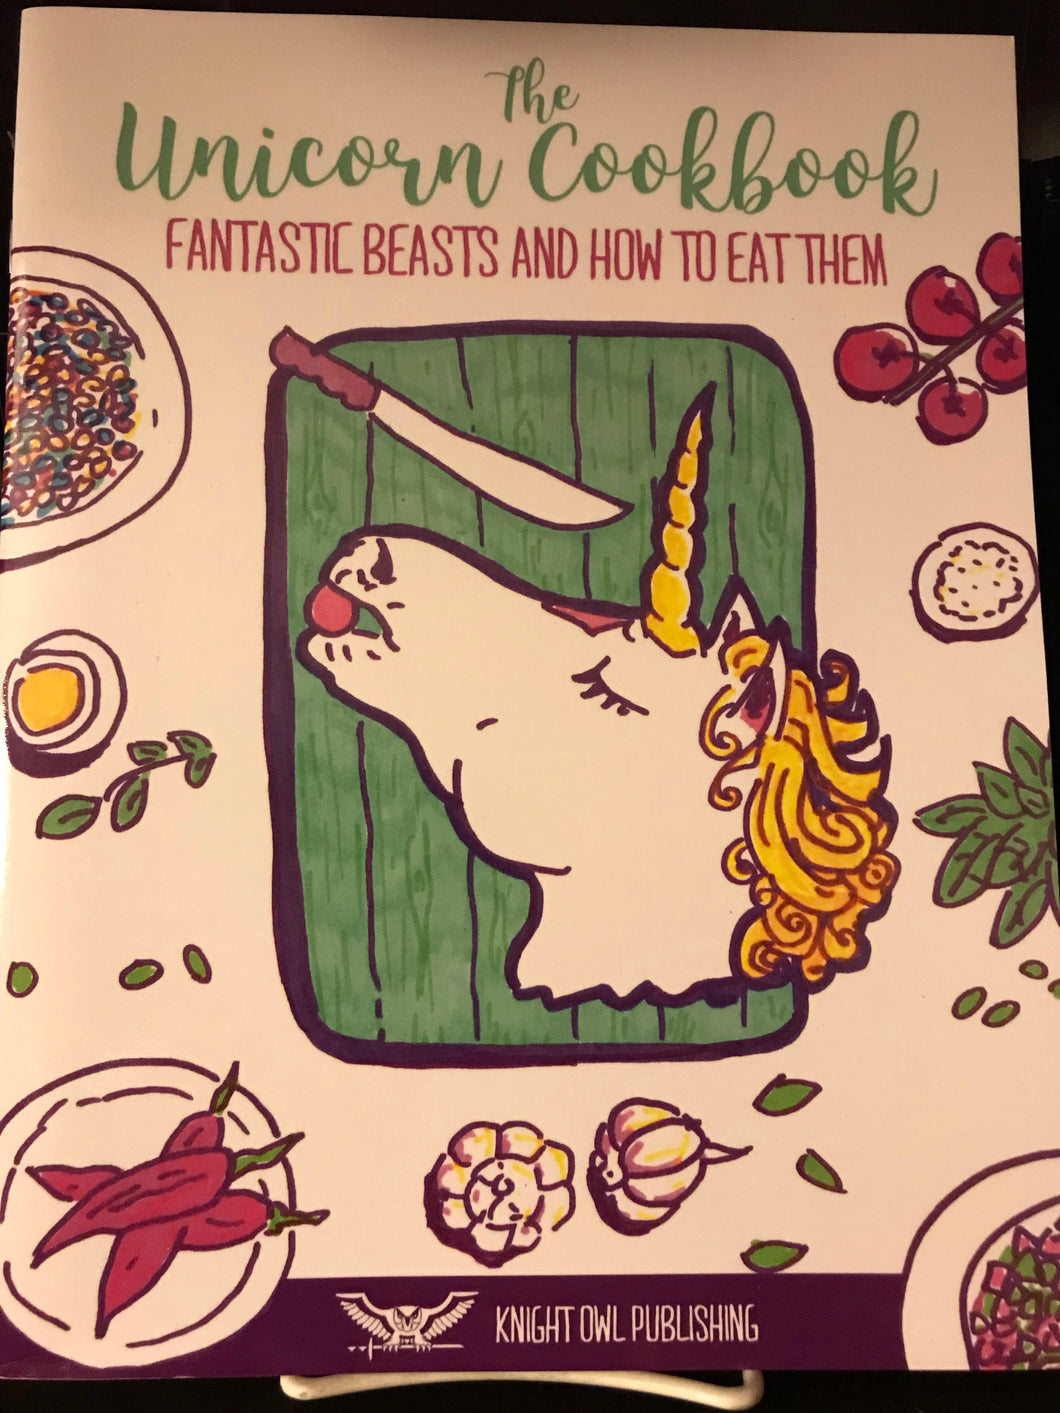 The Unicorn Cookbook: Fantastic Beasts and How to Eat Them